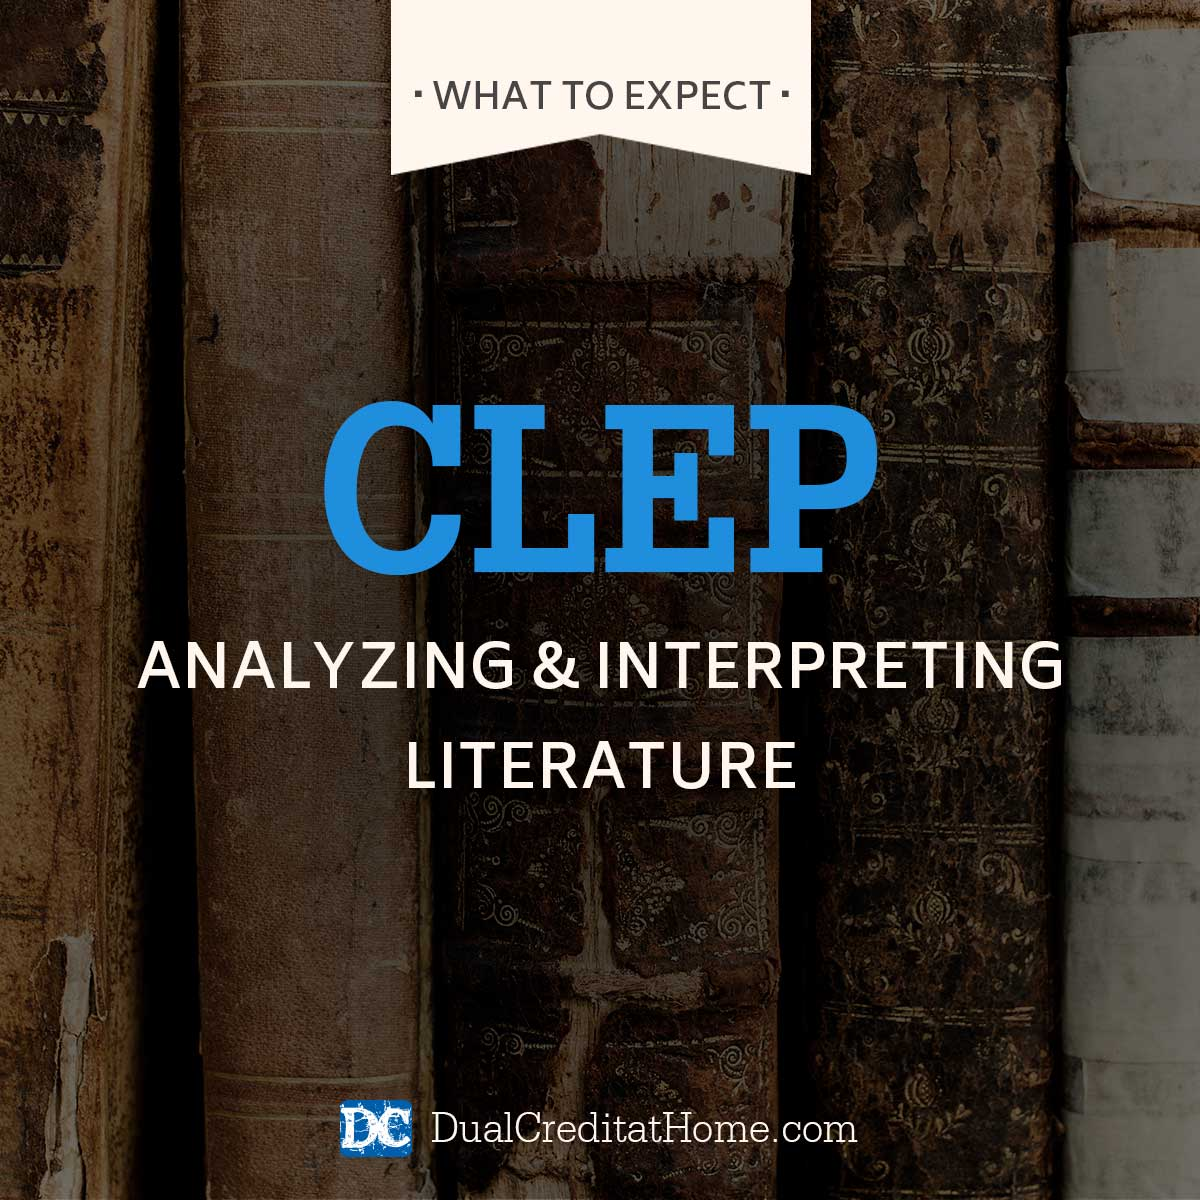 CLEP Analyzing & Interpreting Literature